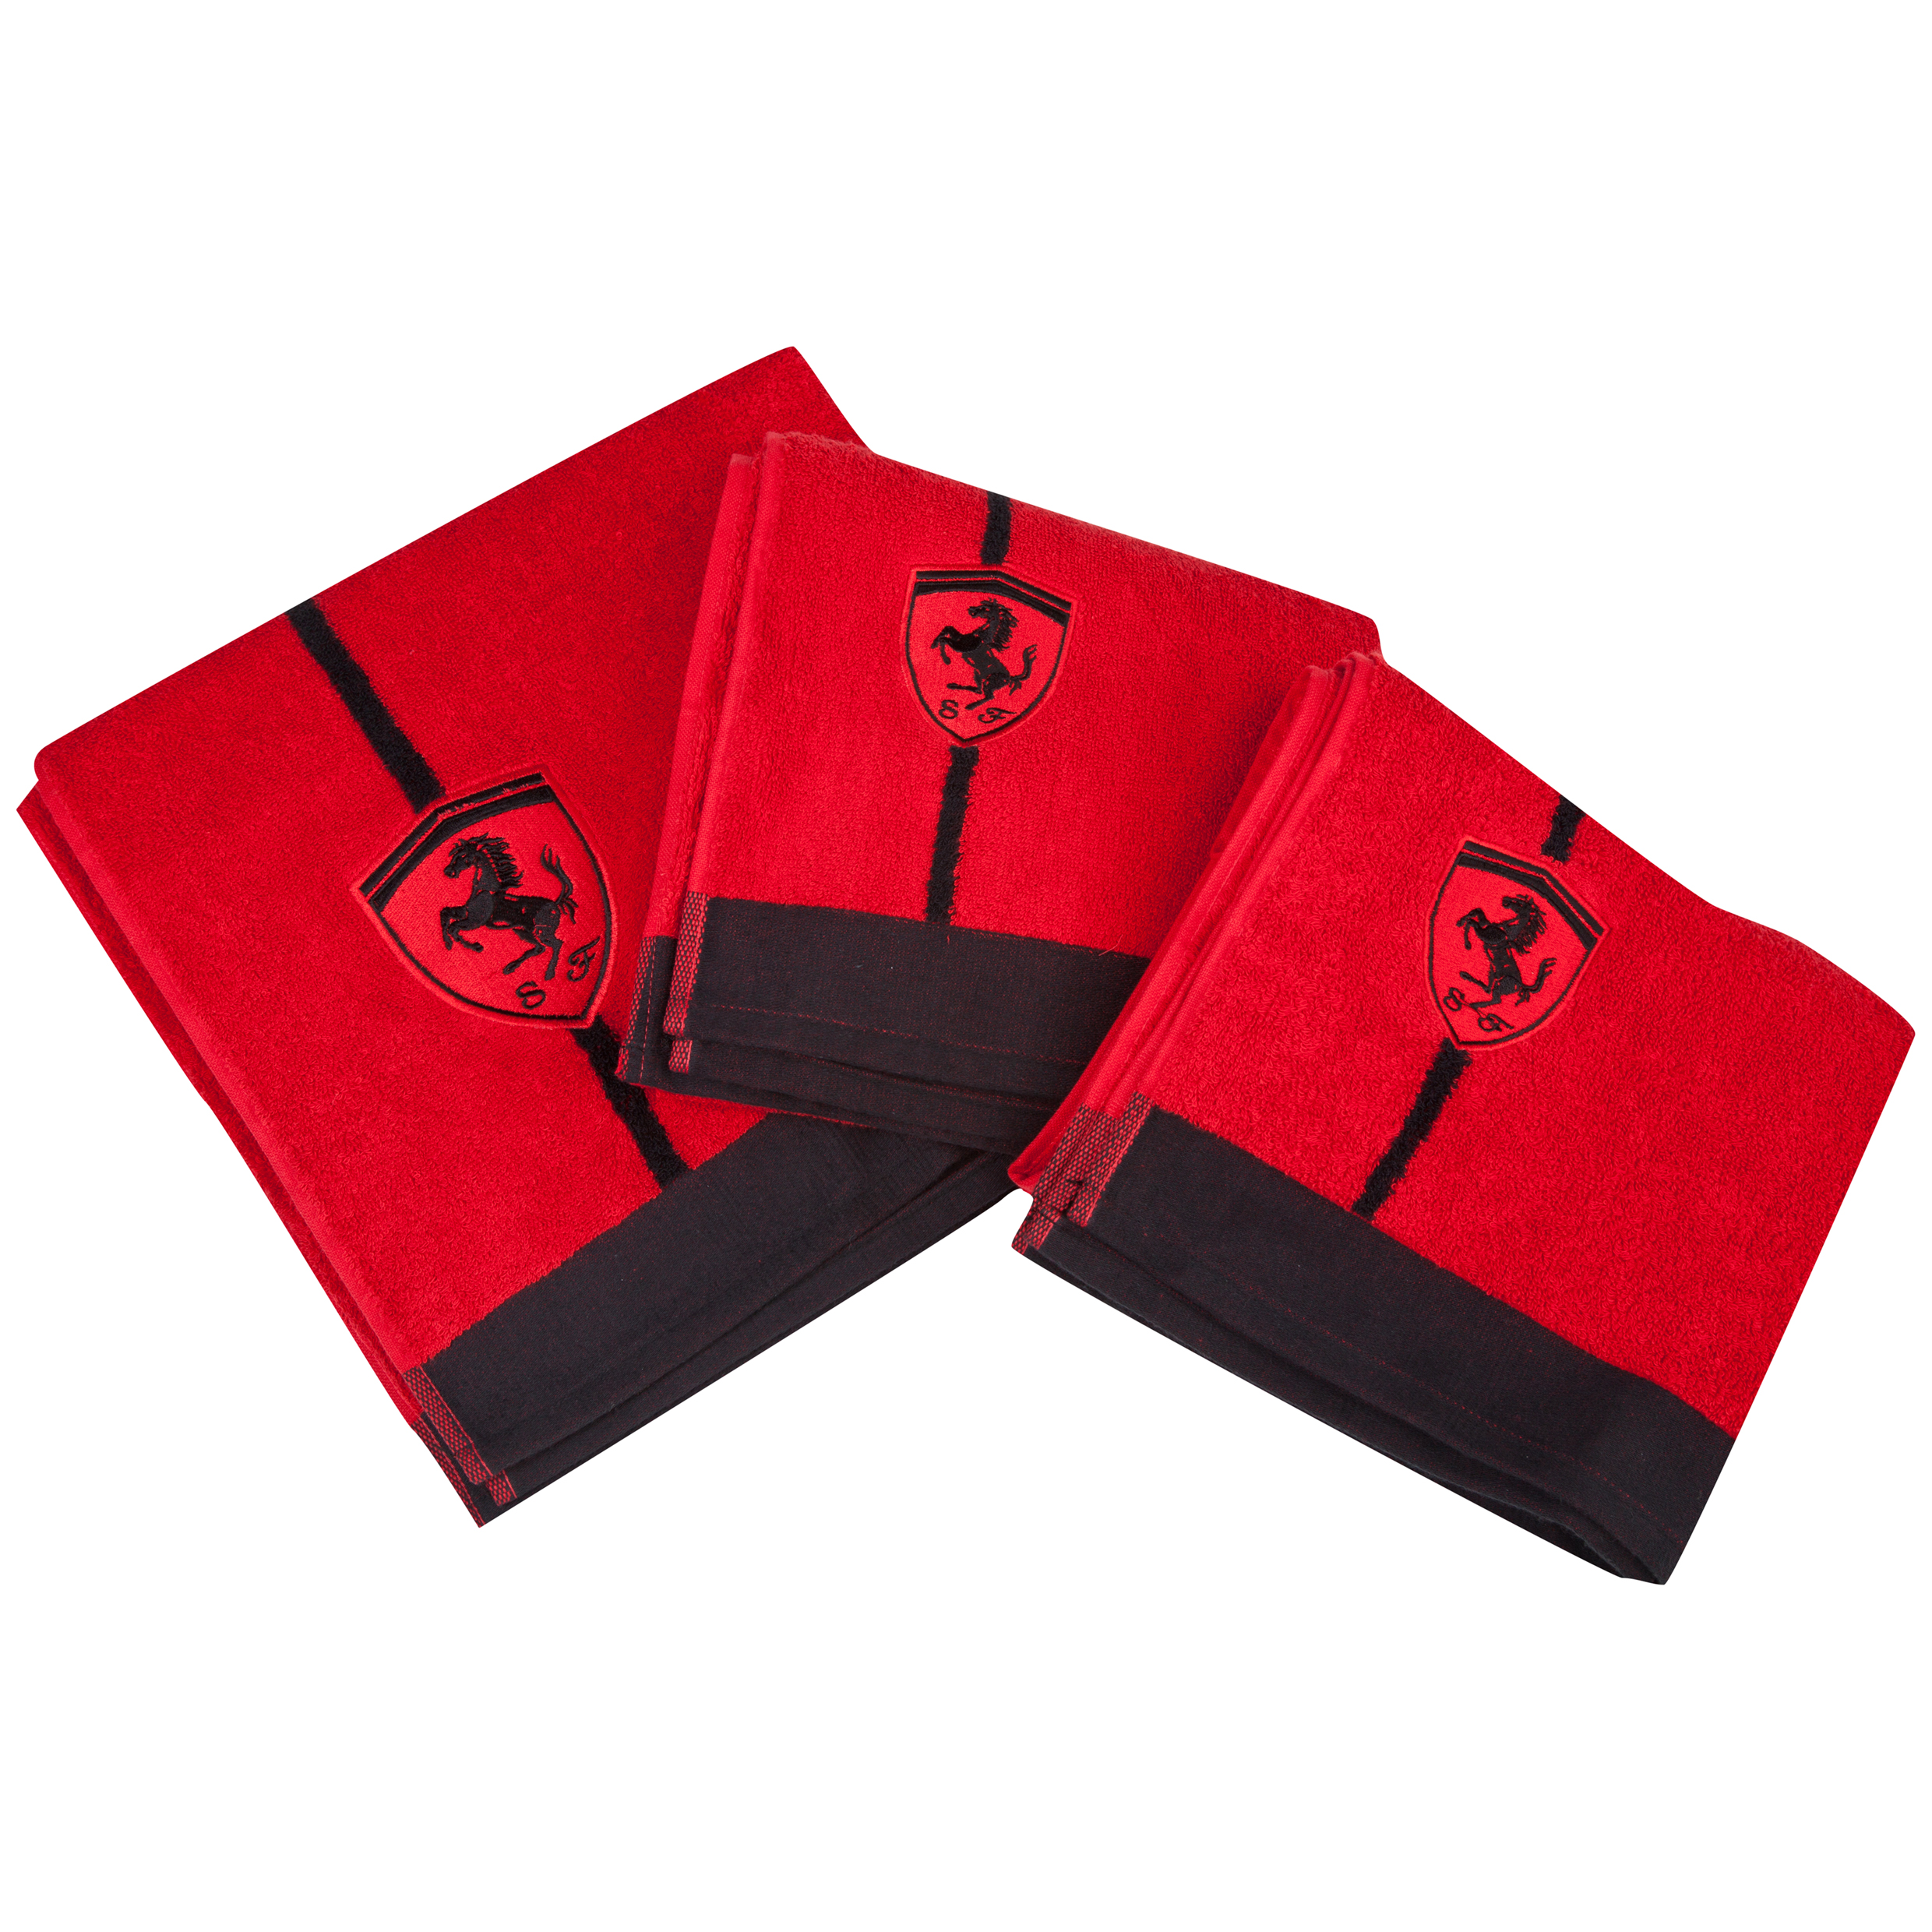 Scuderia Ferrari Exclusive Collection Terry Towel Set